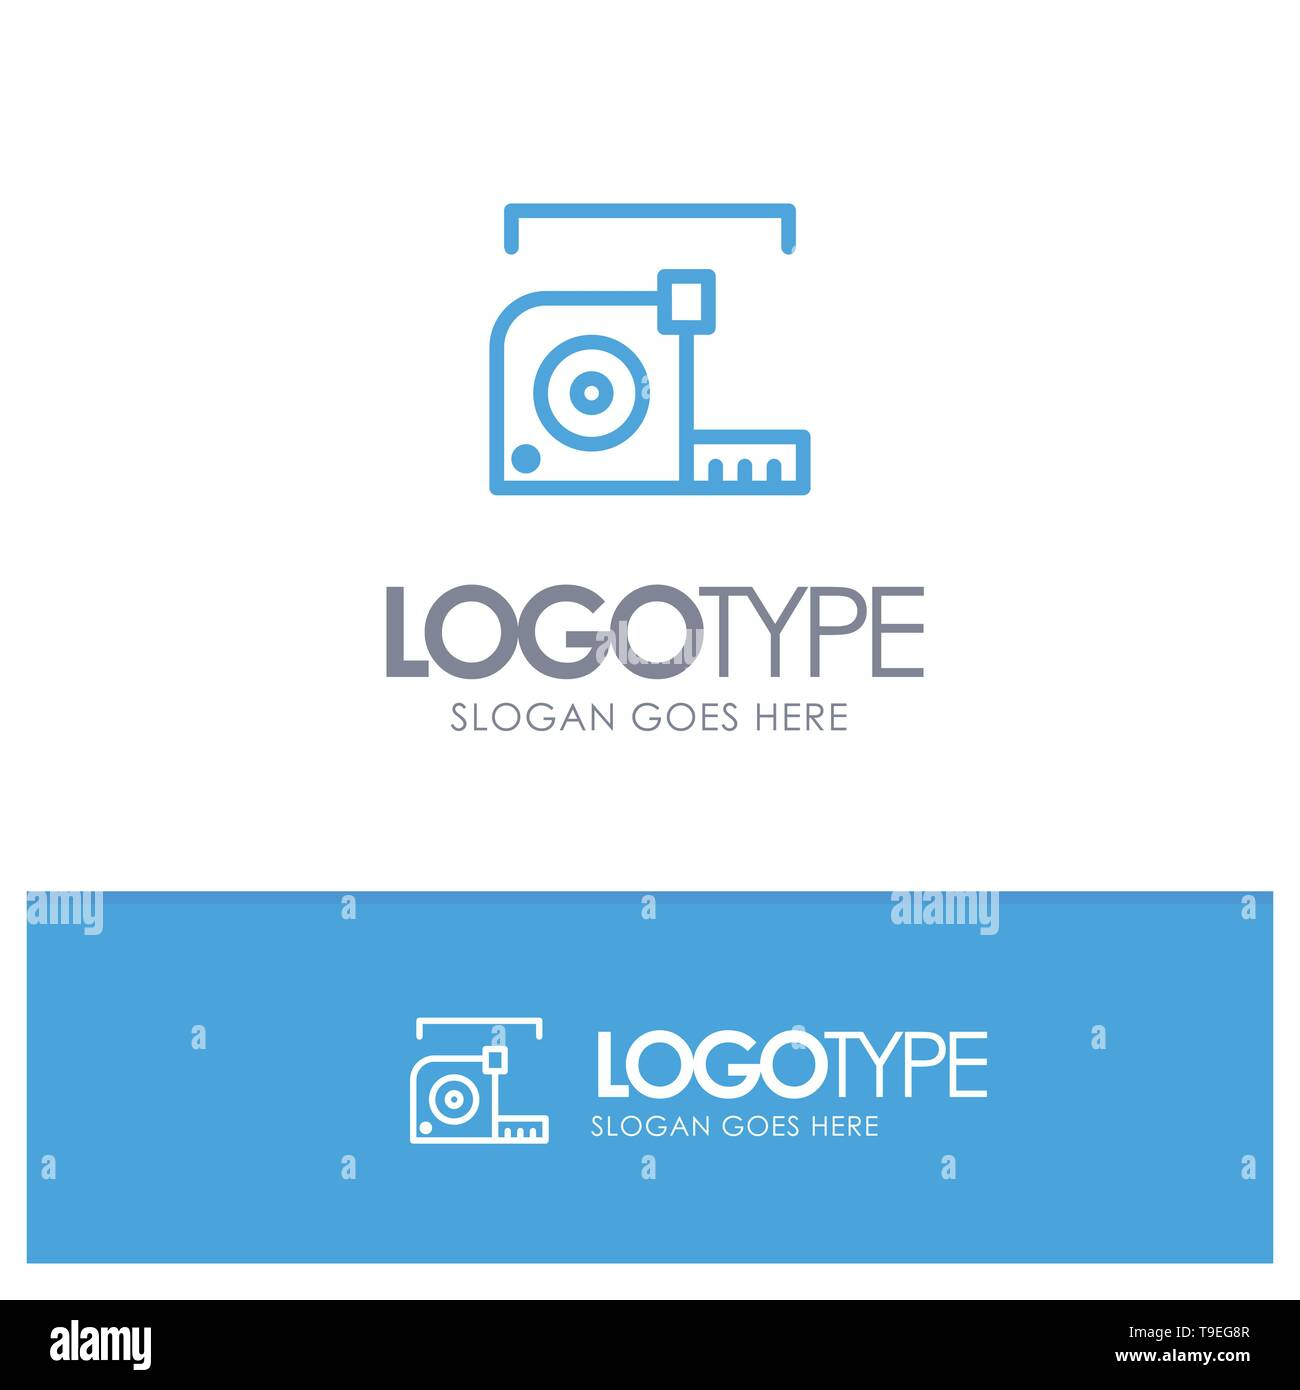 Measure, Measurement, Meter, Roulette, Ruler Blue outLine Logo with place for tagline - Stock Image